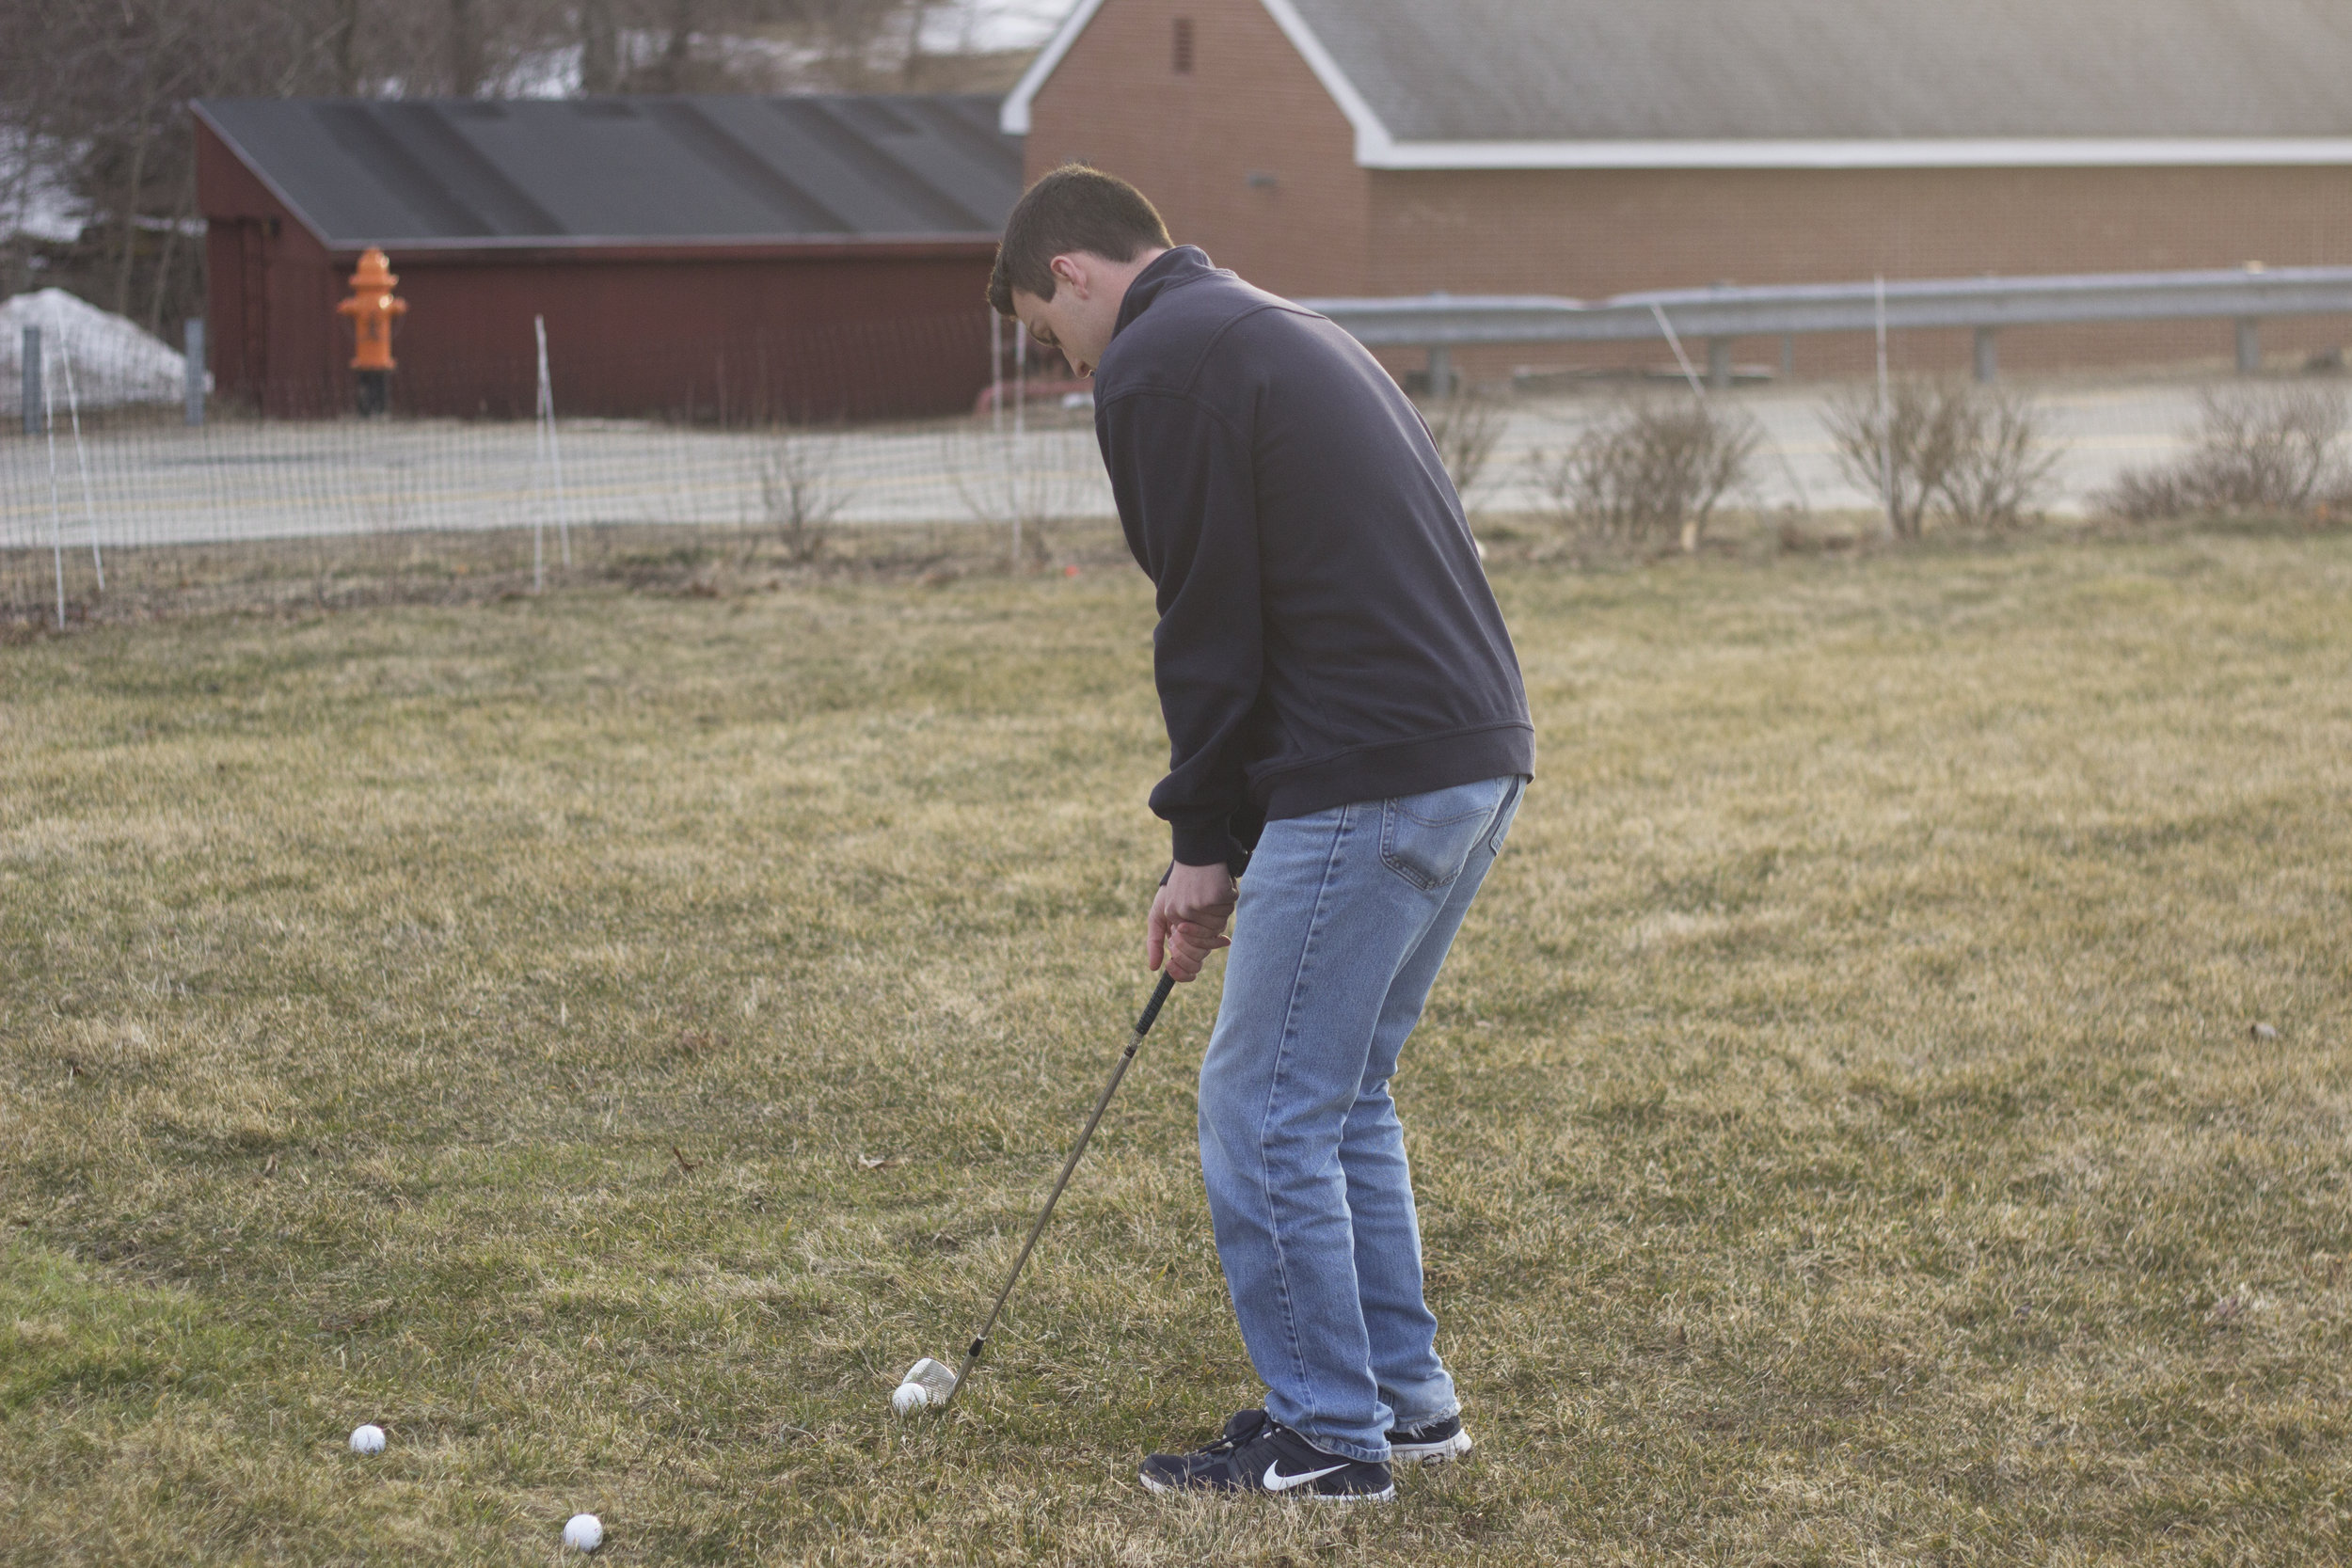 A member of the UConn golf team practices his shot. (File Photo/The Daily Campus)